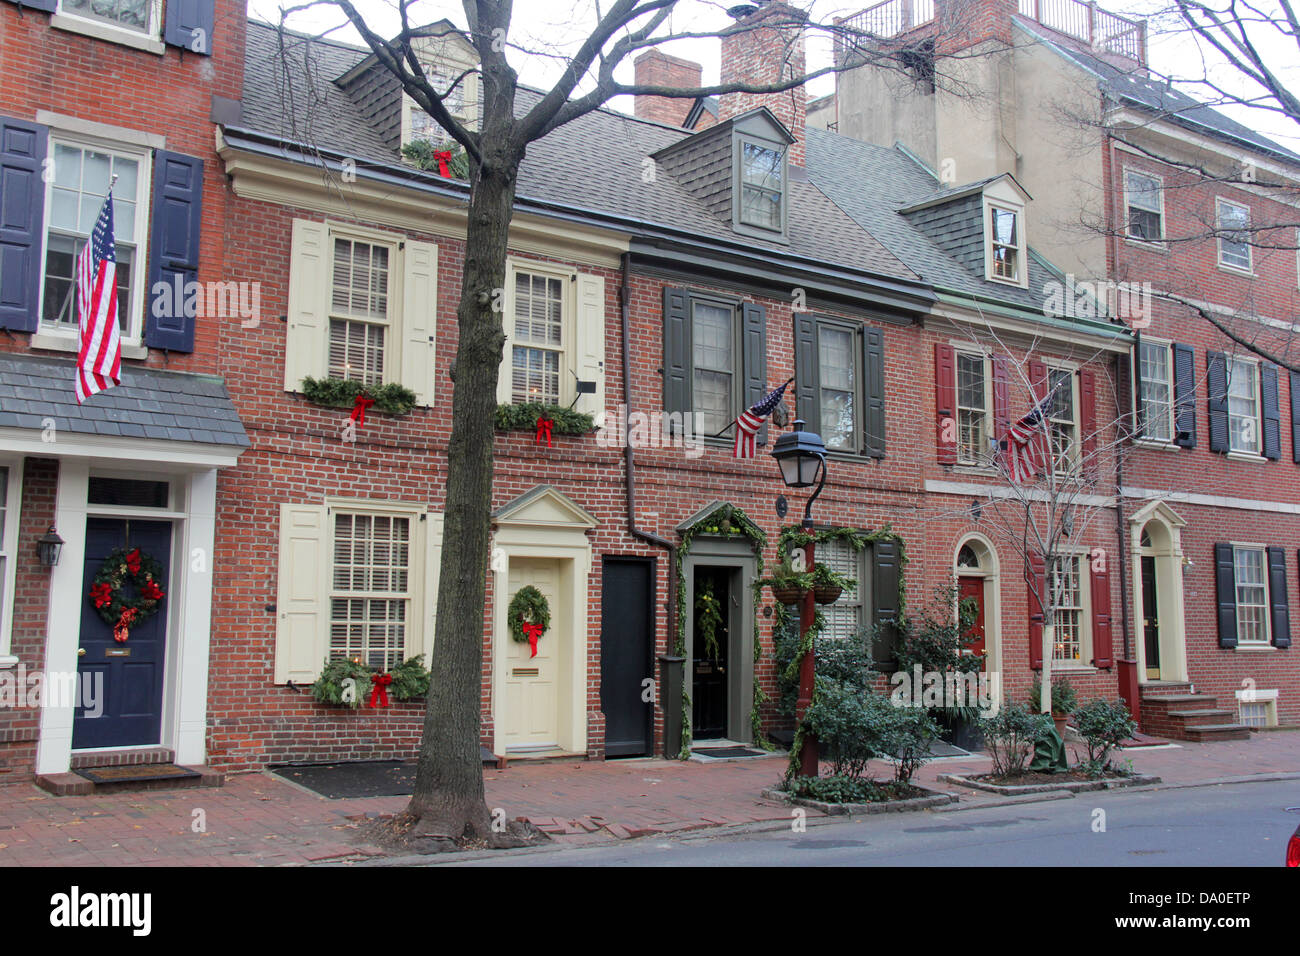 Fall Outdoor Decorations Wallpaper Colonial Houses In Philadelphia Pennsylvania With